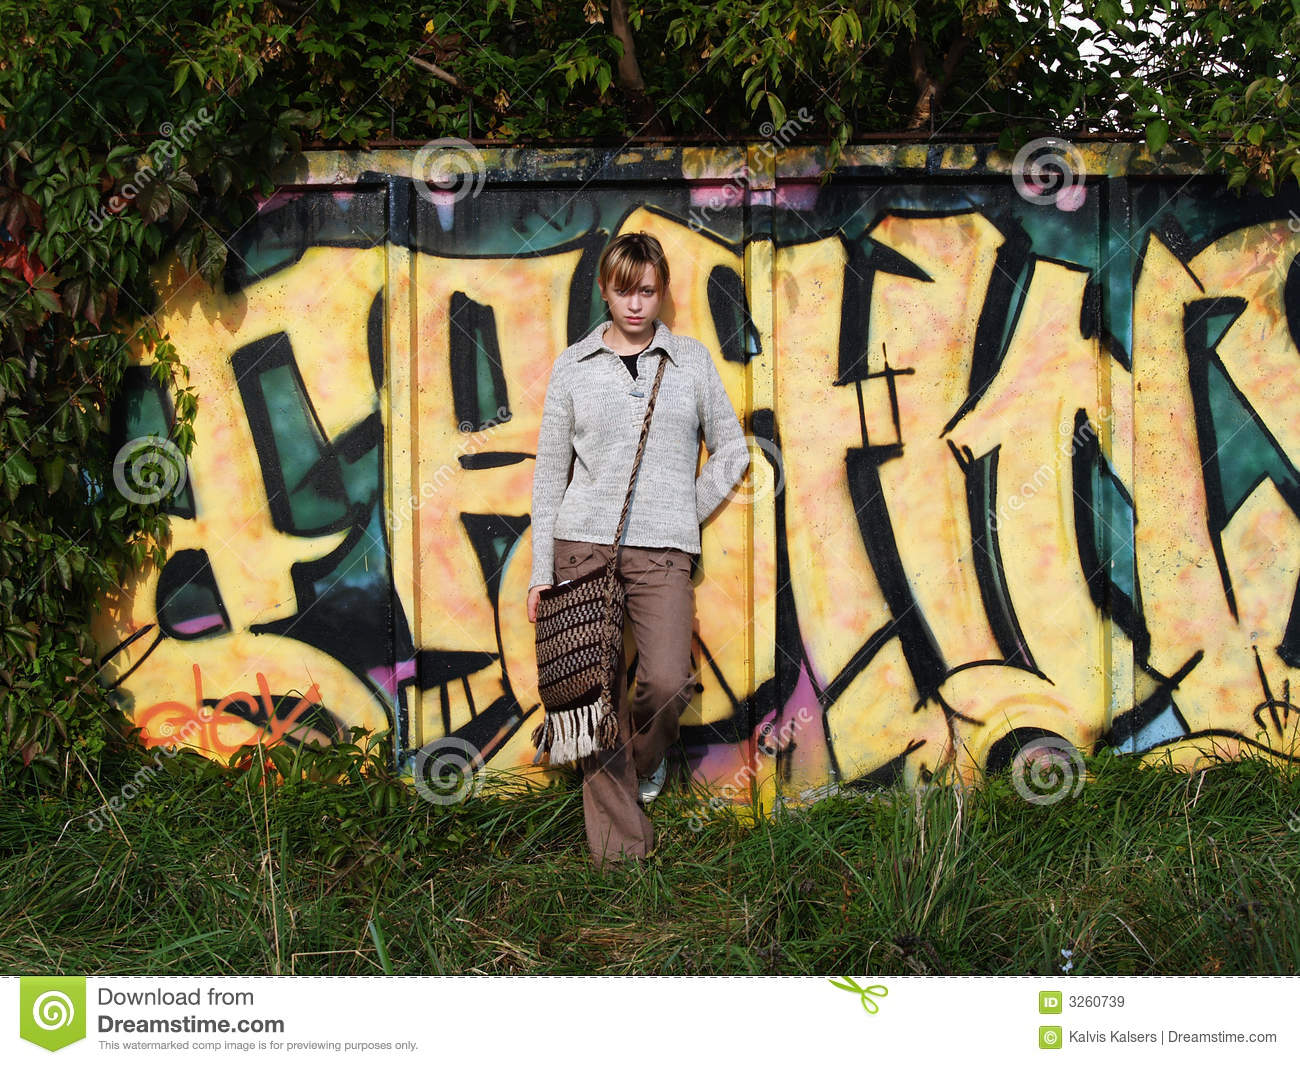 Download Graffiti in nature stock image. Image of building, lifestyle - 3260739